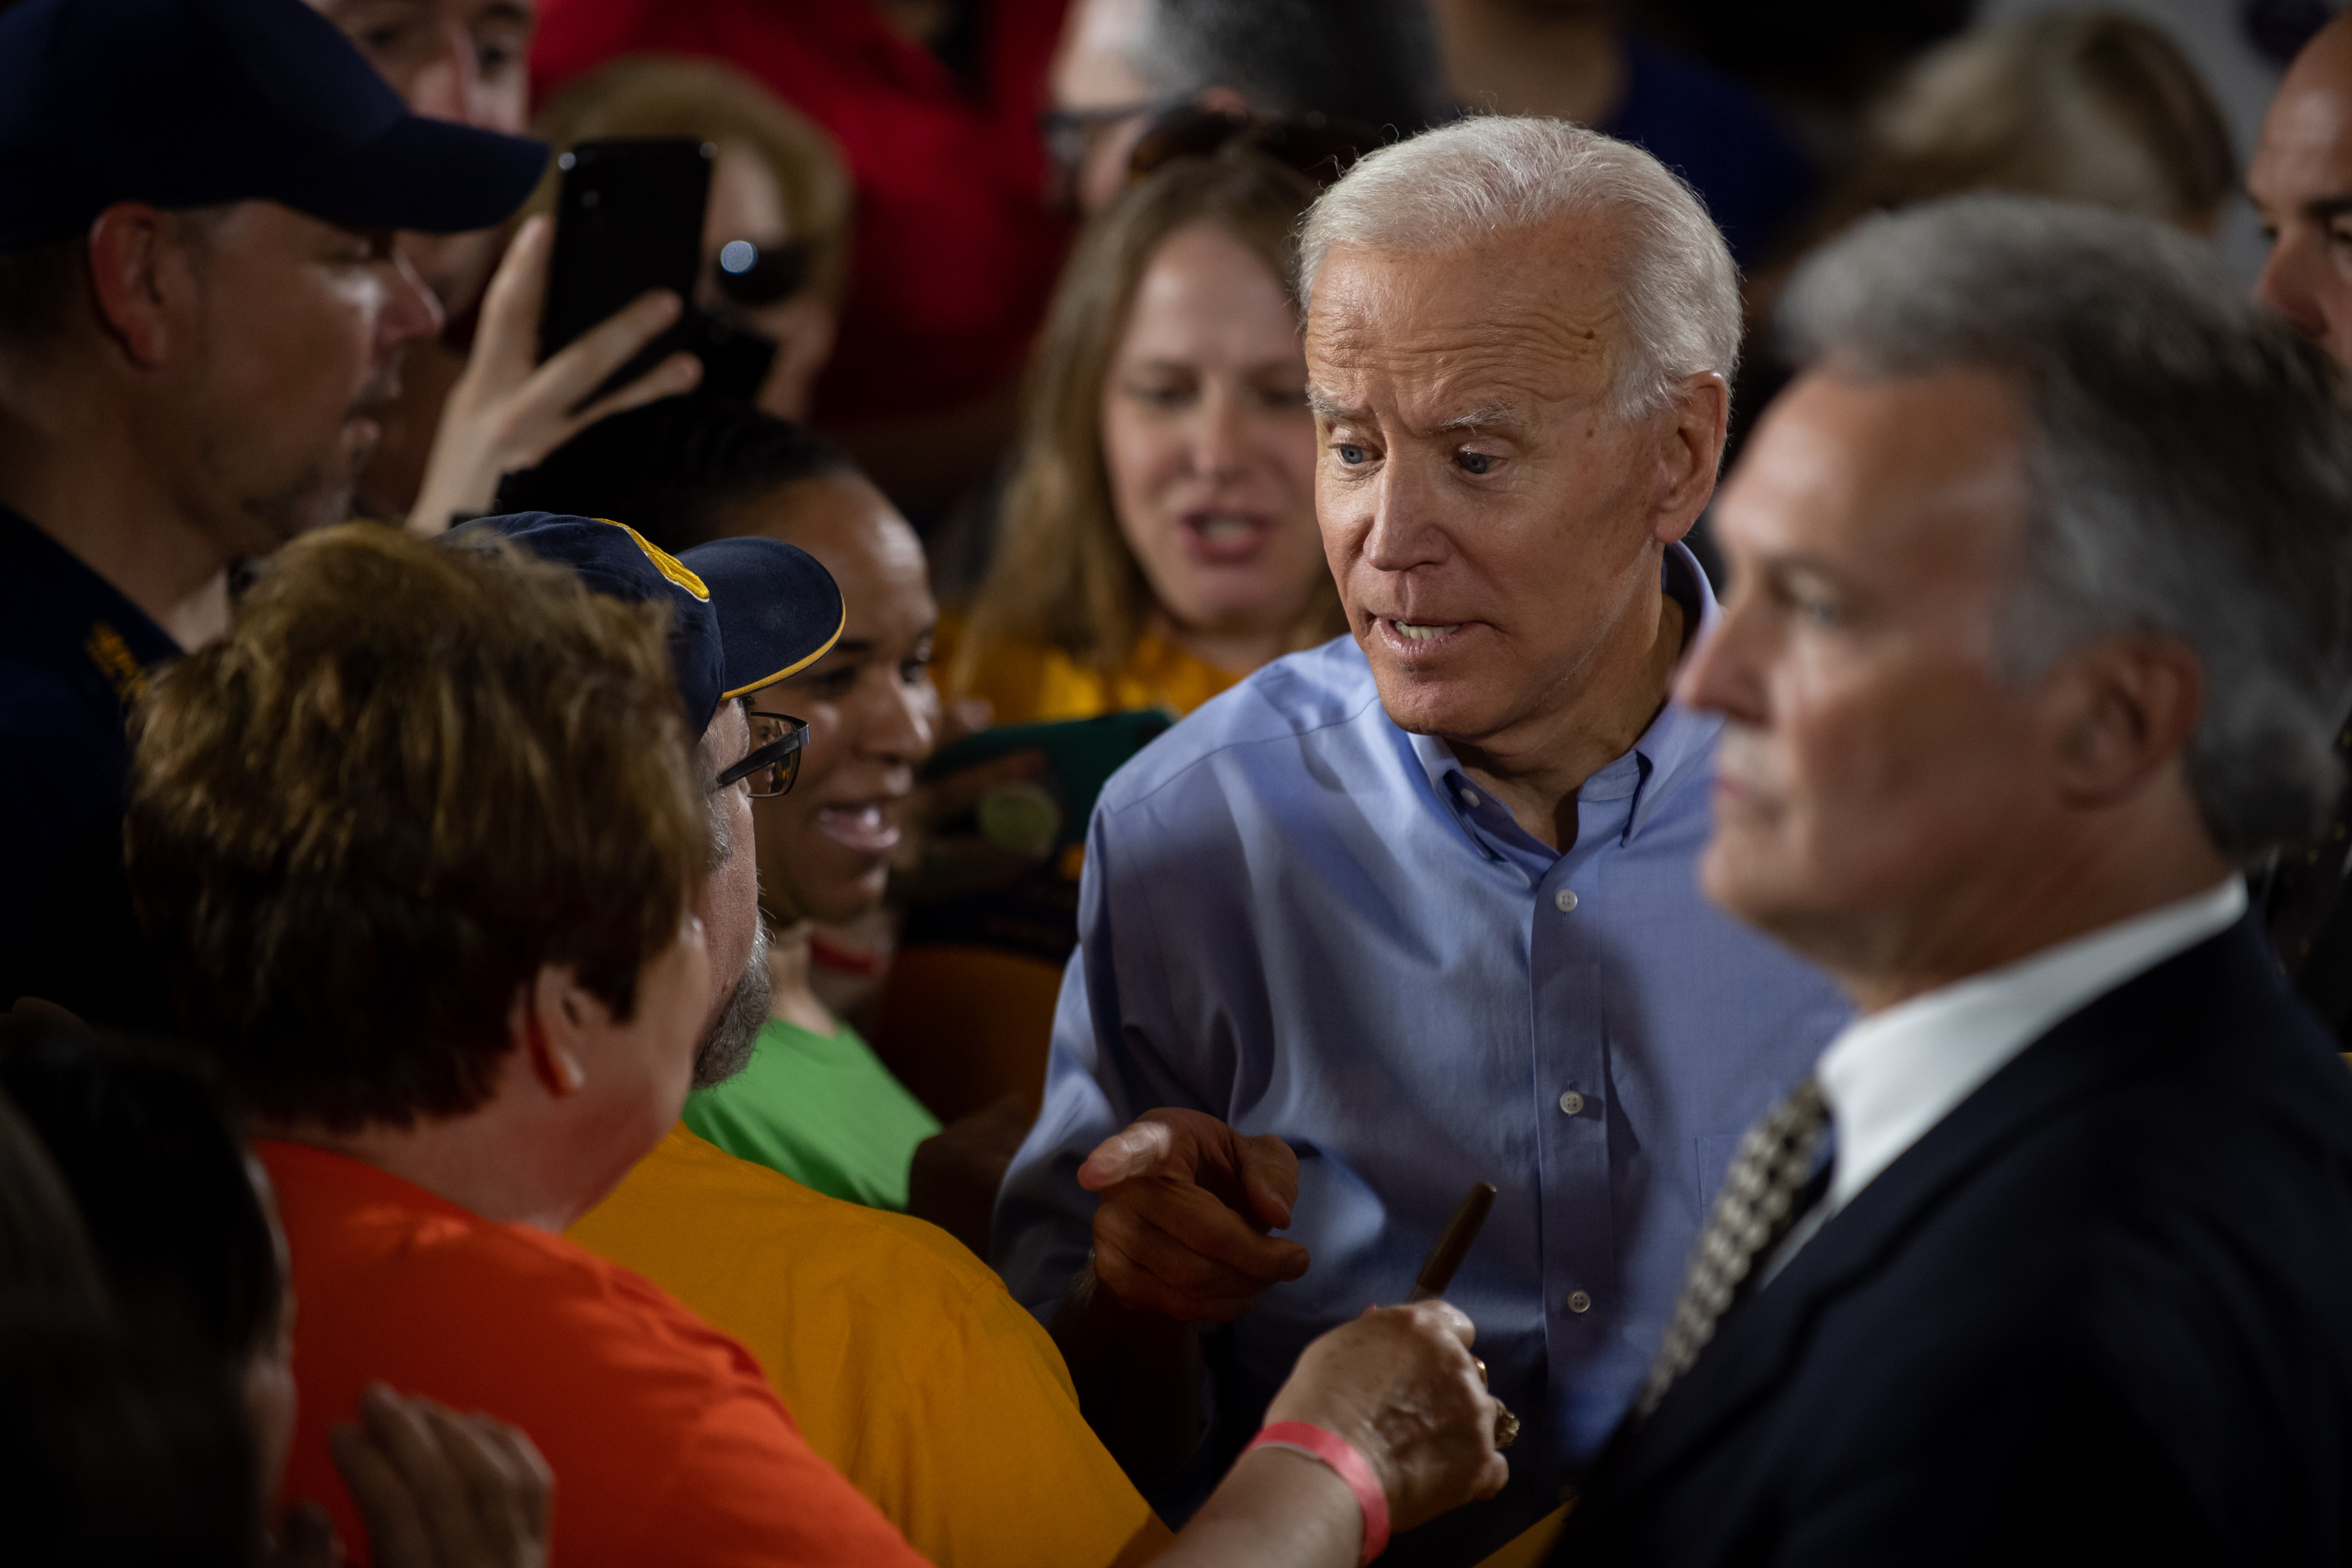 PITTSBURGH, PA - APRIL 29: Former U.S. Vice President Joe Biden greets well-wishers at a campaign rally at Teamsters Local 249 Union Hall April 29, 2019 in Pittsburgh, Pennsylvania. Biden began his first full week of campaigning for president by speaking on how to rebuild America's middle class. (Photo by Jeff Swensen/Getty Images)